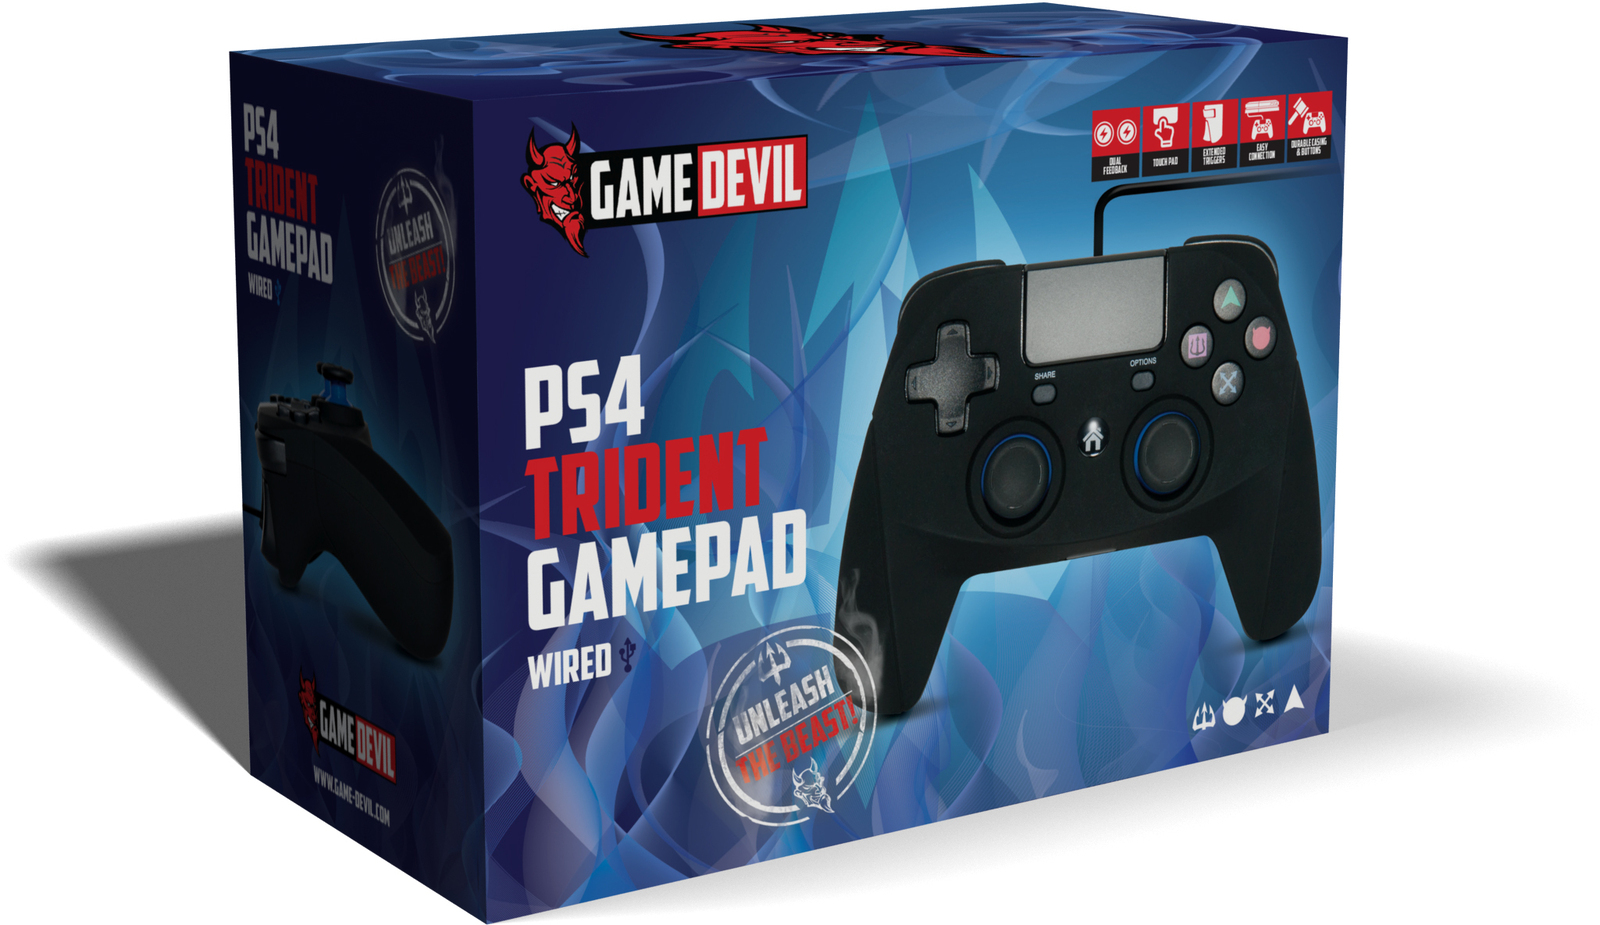 Gamedevil Trident Wired Gamepad Controller Ps4 Logitech F310